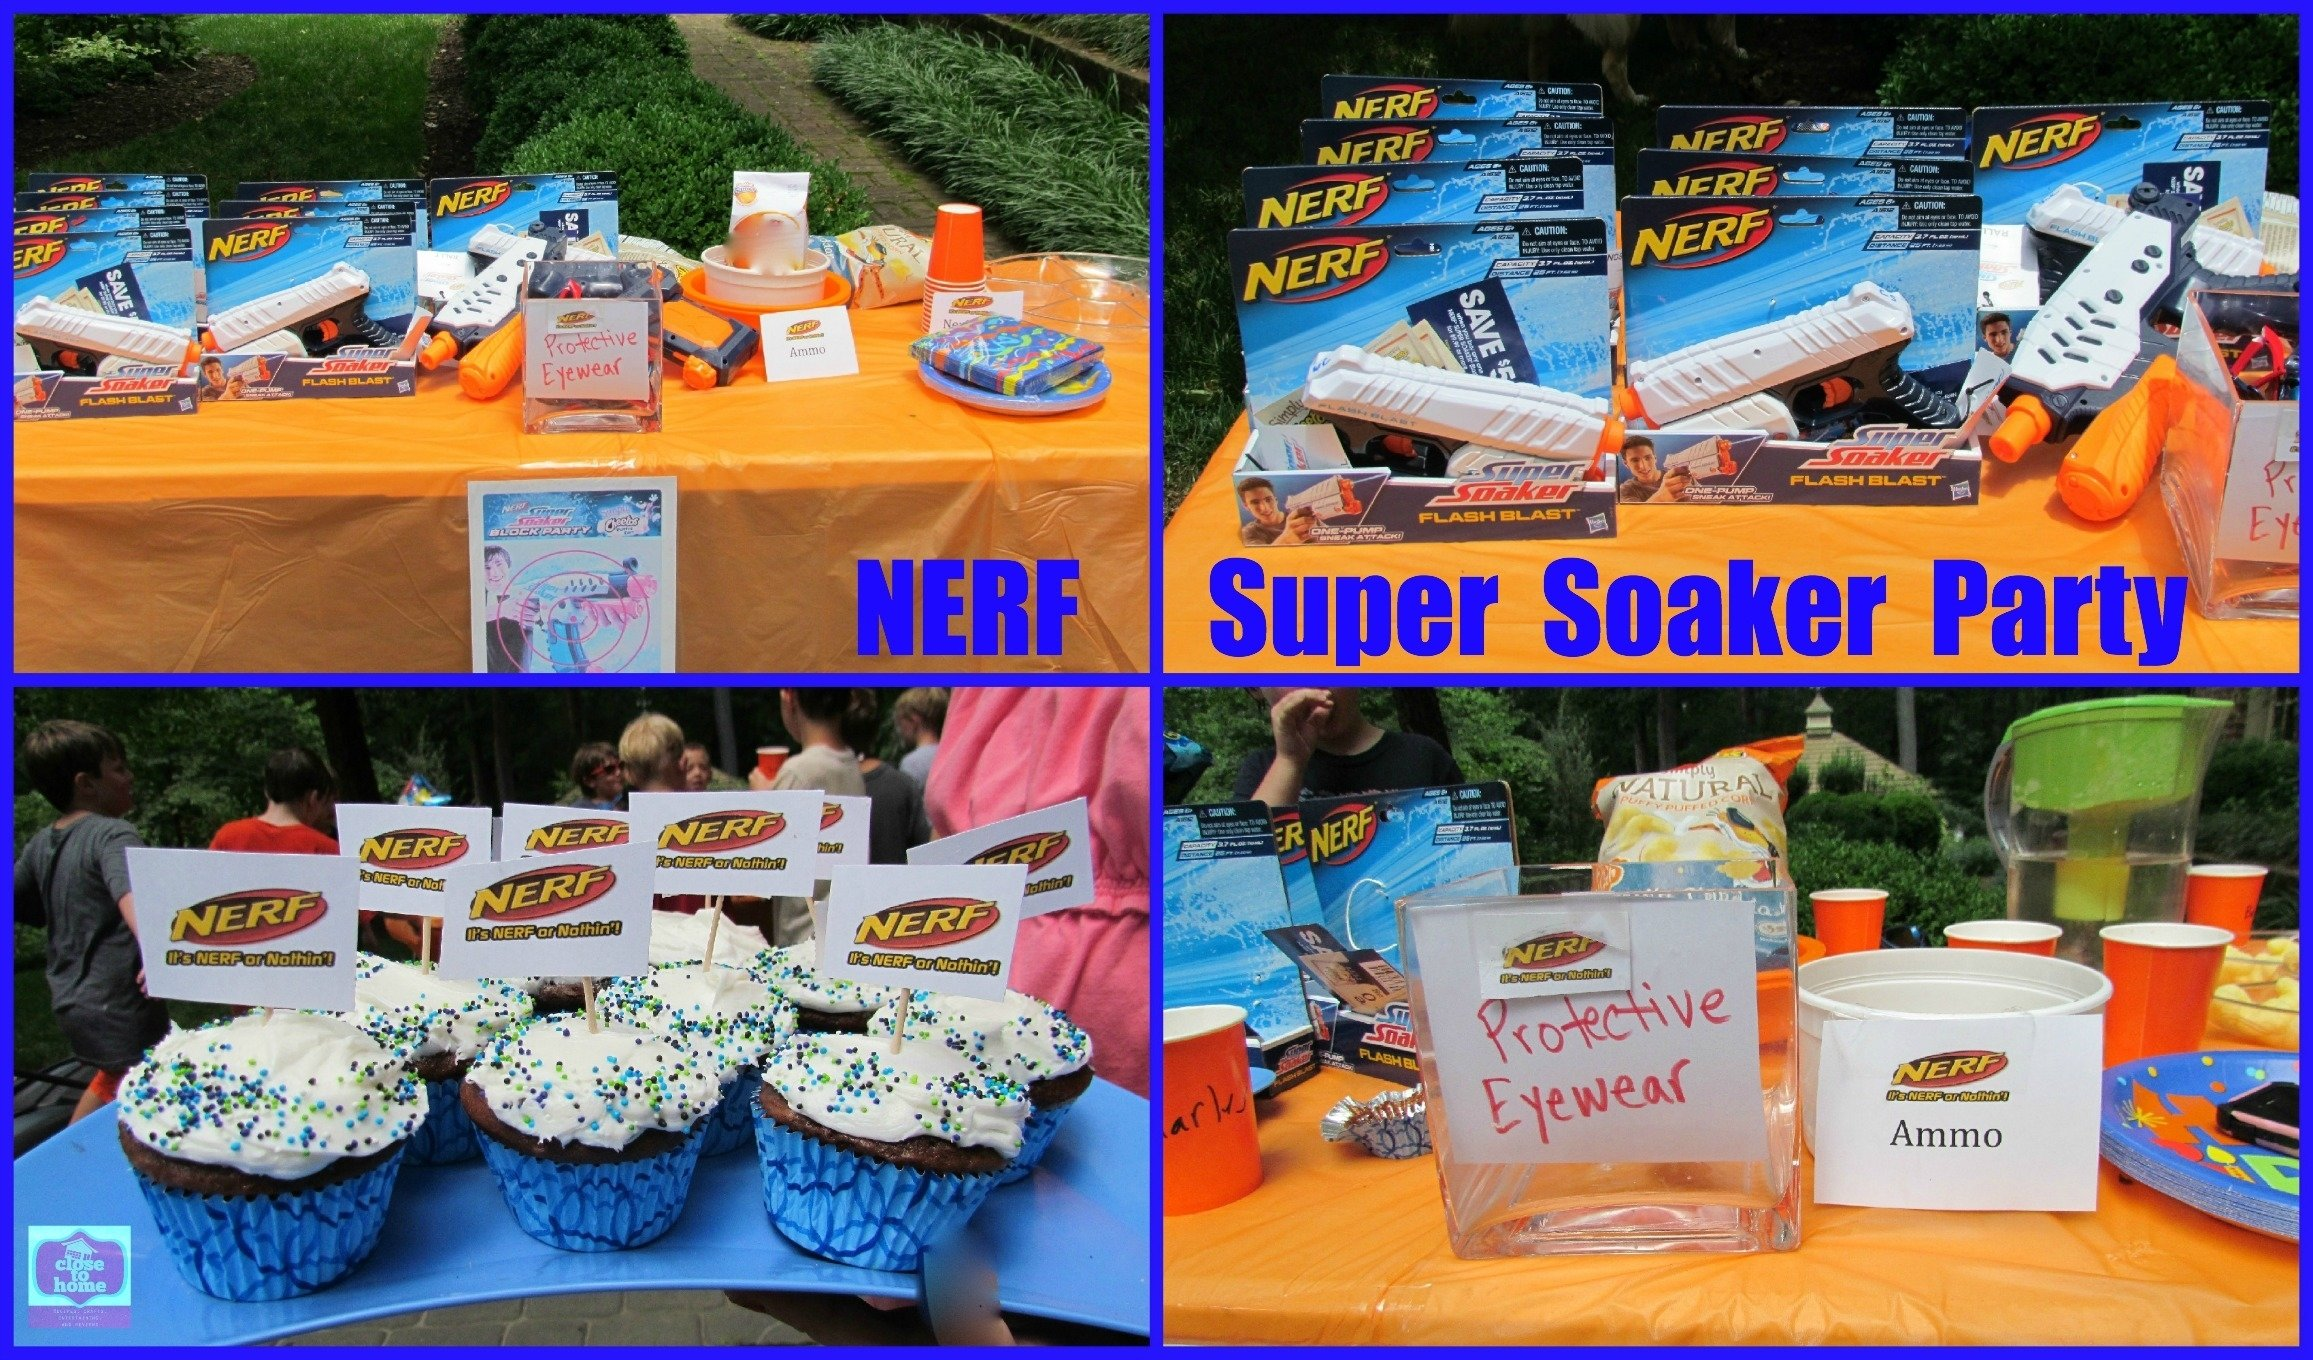 10 Nice 12 Year Old Birthday Party Ideas For Boys nobby 12 year old boy birthday party ideas at home summer nerf super 3